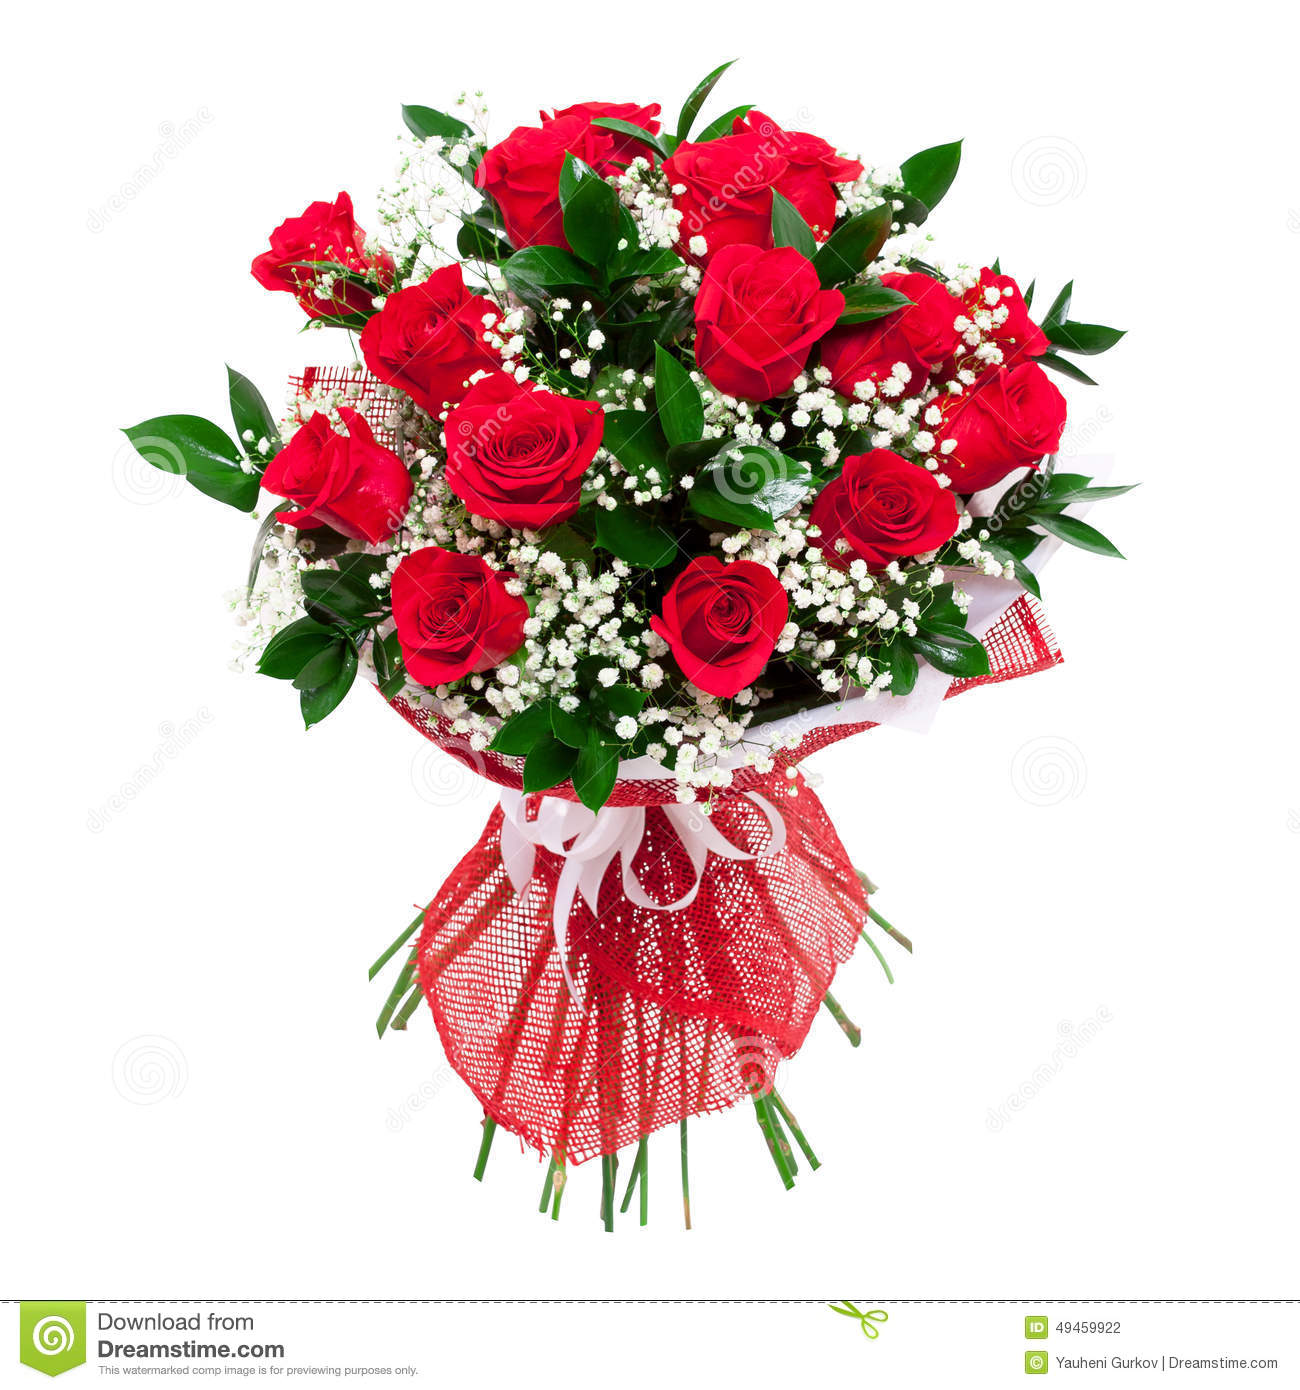 Red Roses Bouquet  Colorful And Bright  Isolated On White Background